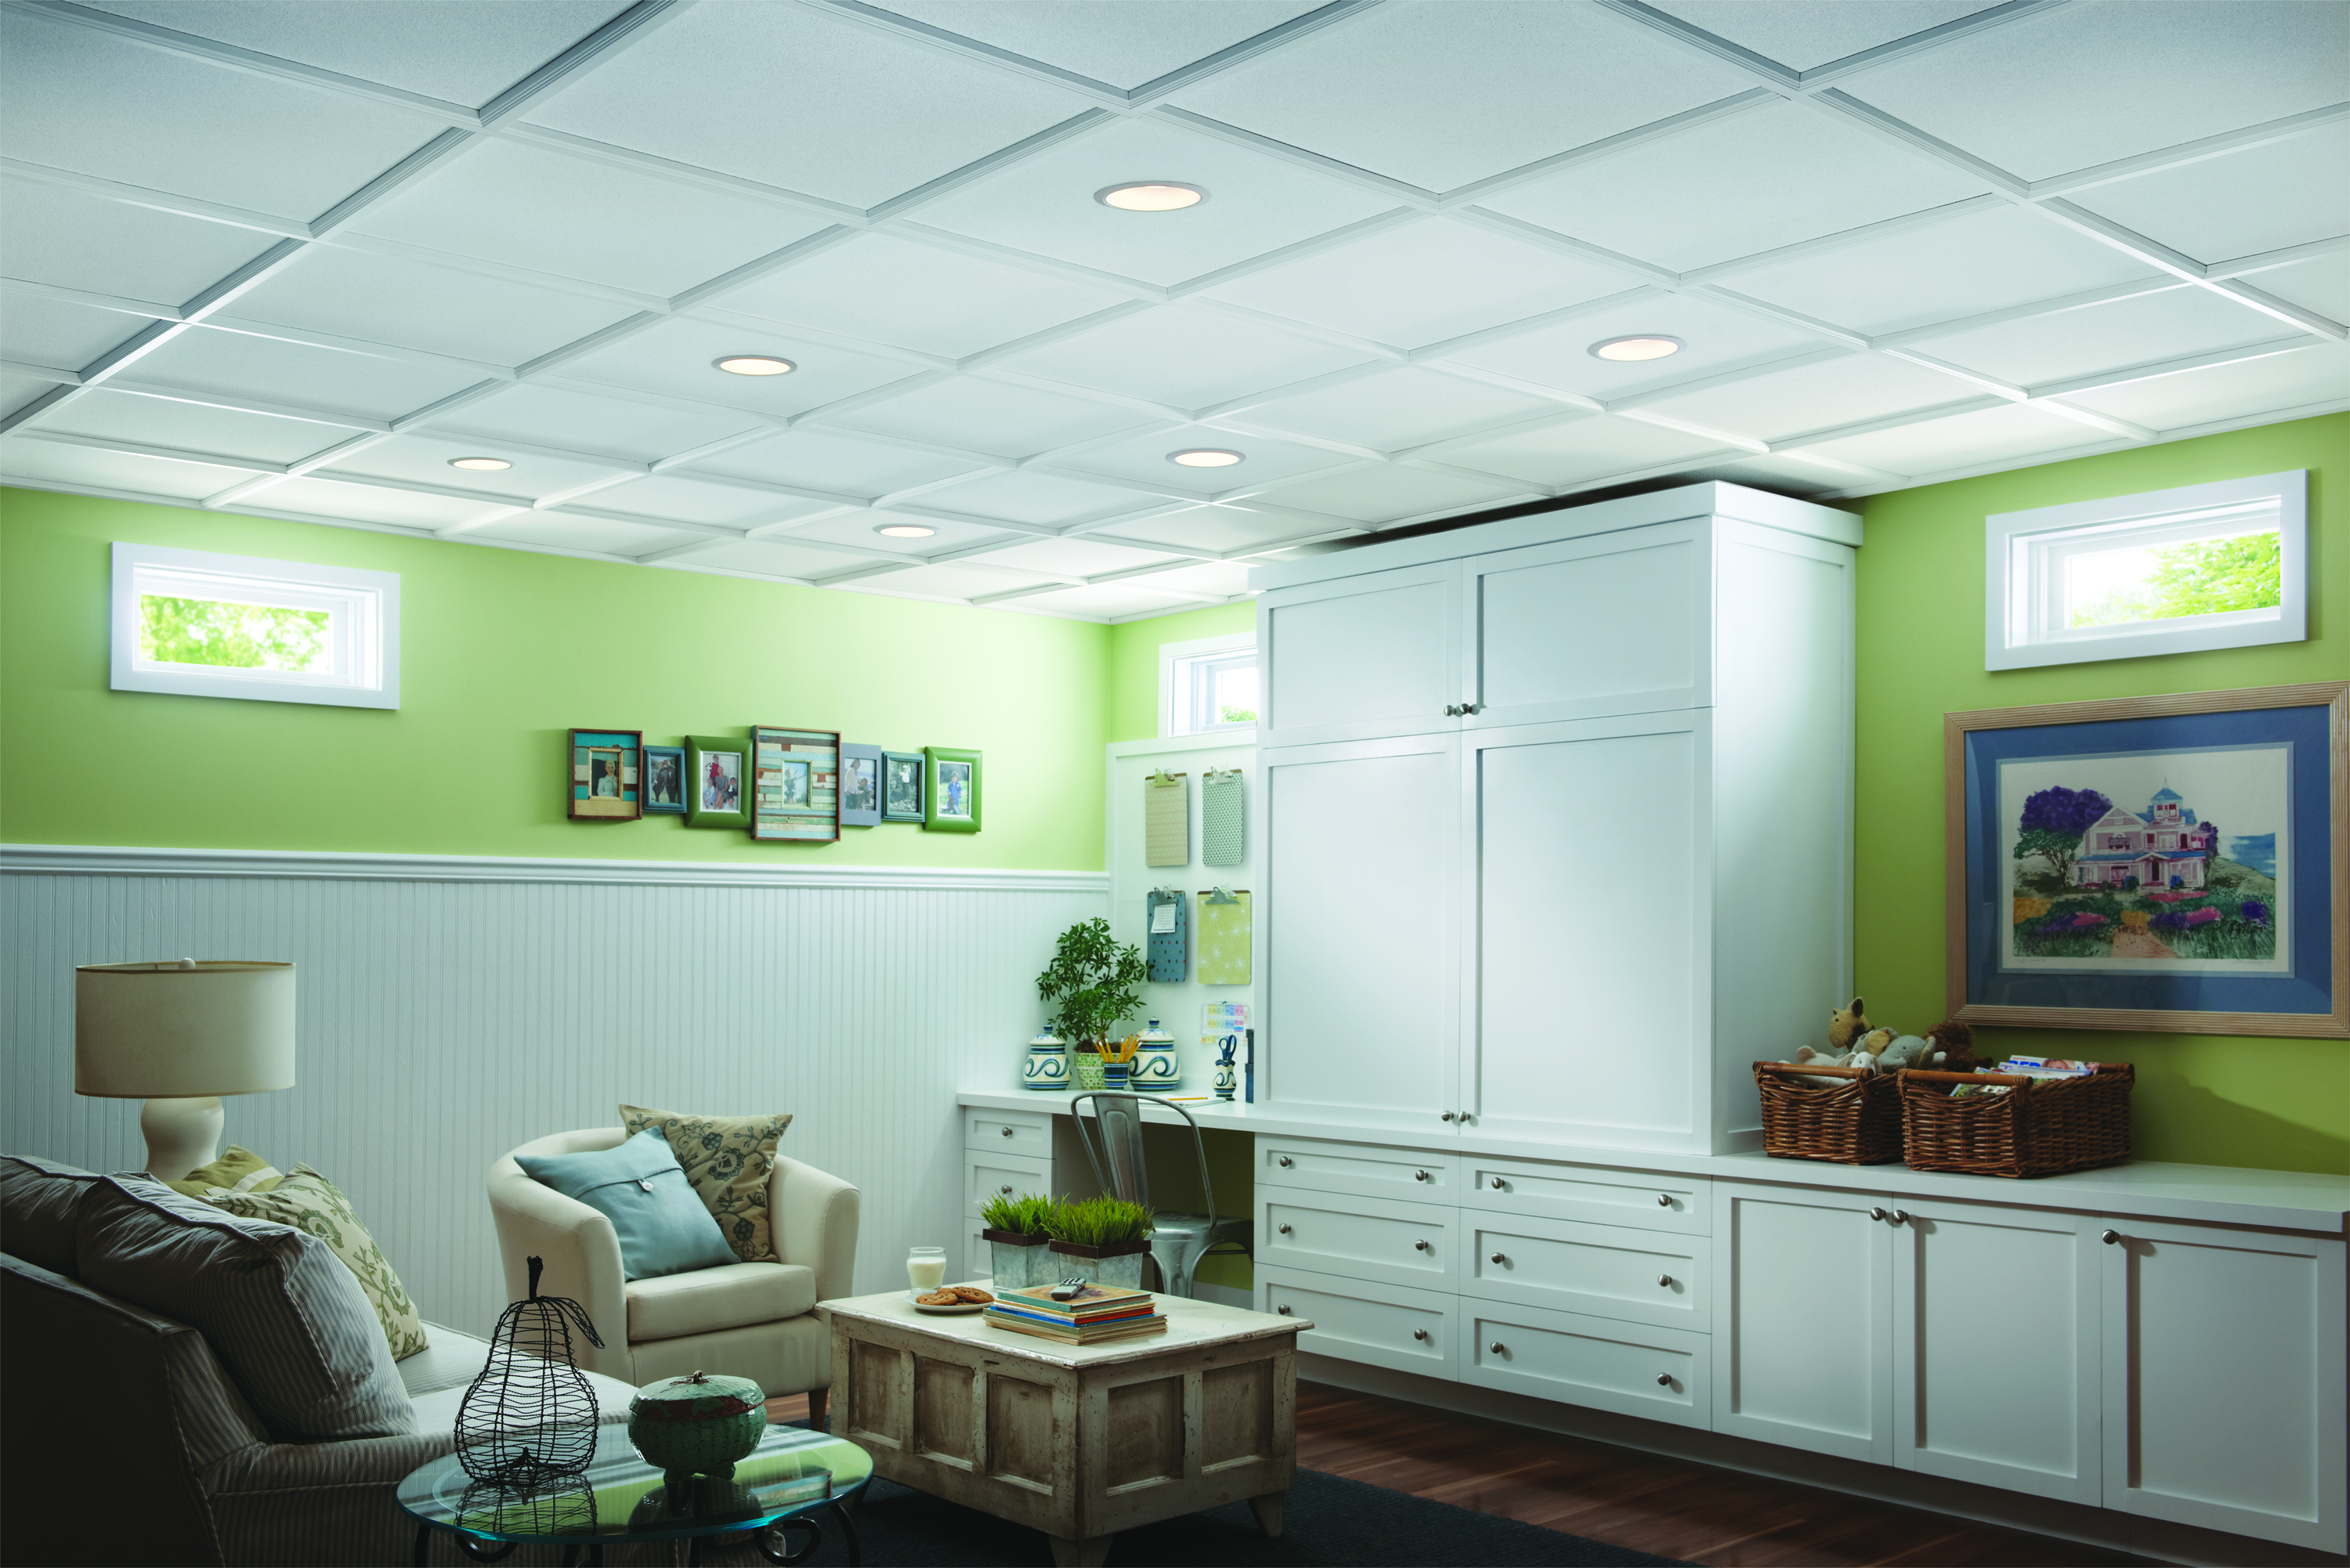 Stylestix Ceiling Grid Covers